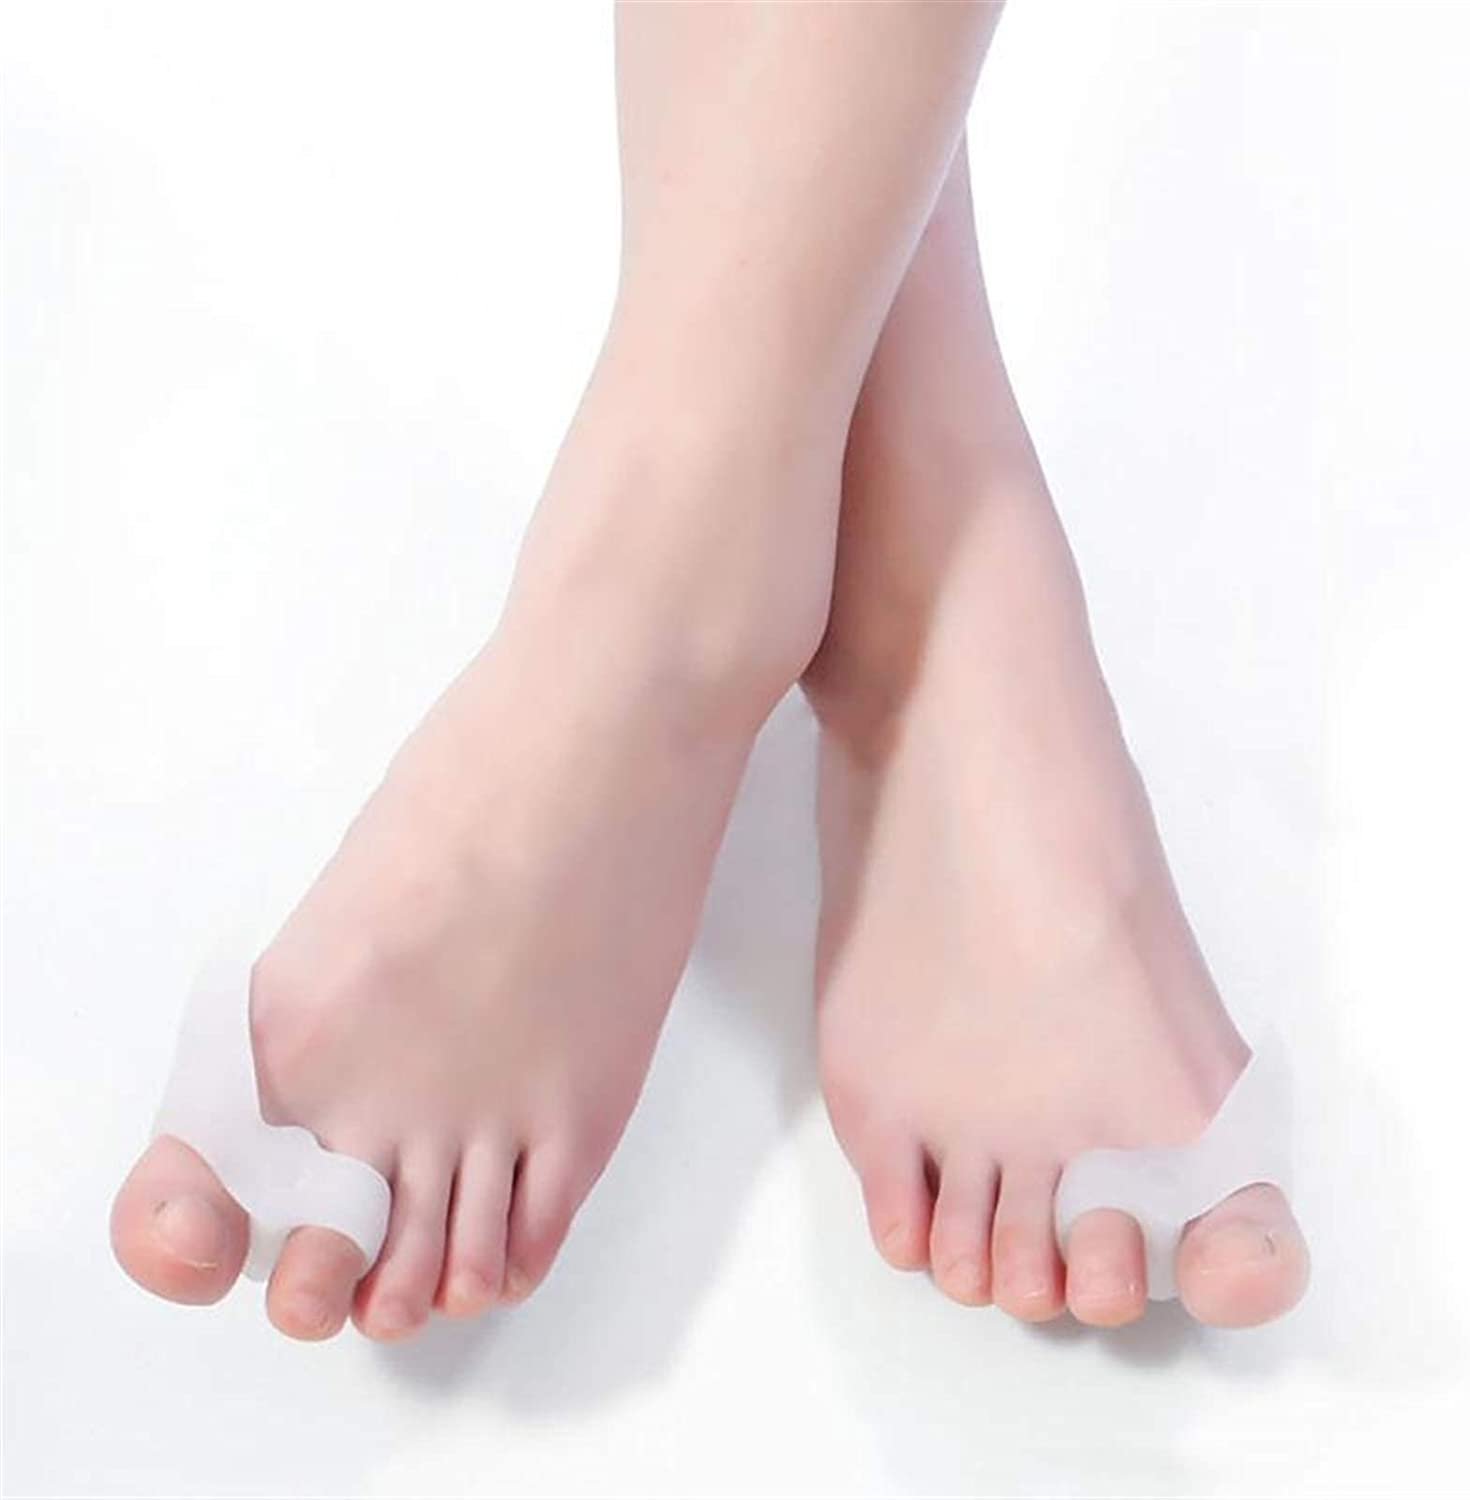 ZXJJY 1 Pair Silicone Gel Foot Super special price Hole Recommended Two Separator Toe Th Fingers